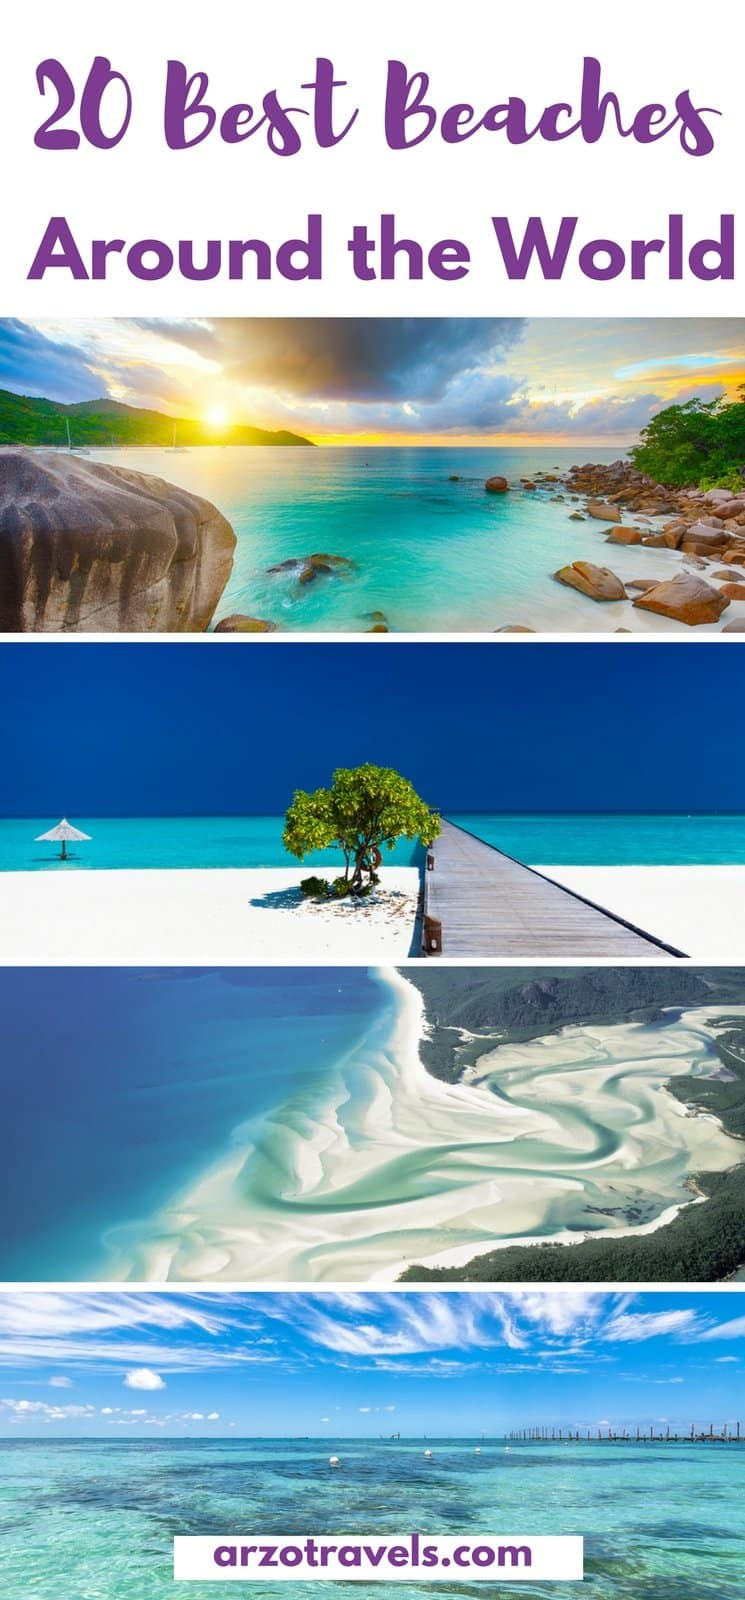 20 amazing beaches around the world - from Europe, to the USA, Australia, Africa, South America, Maldives and more.